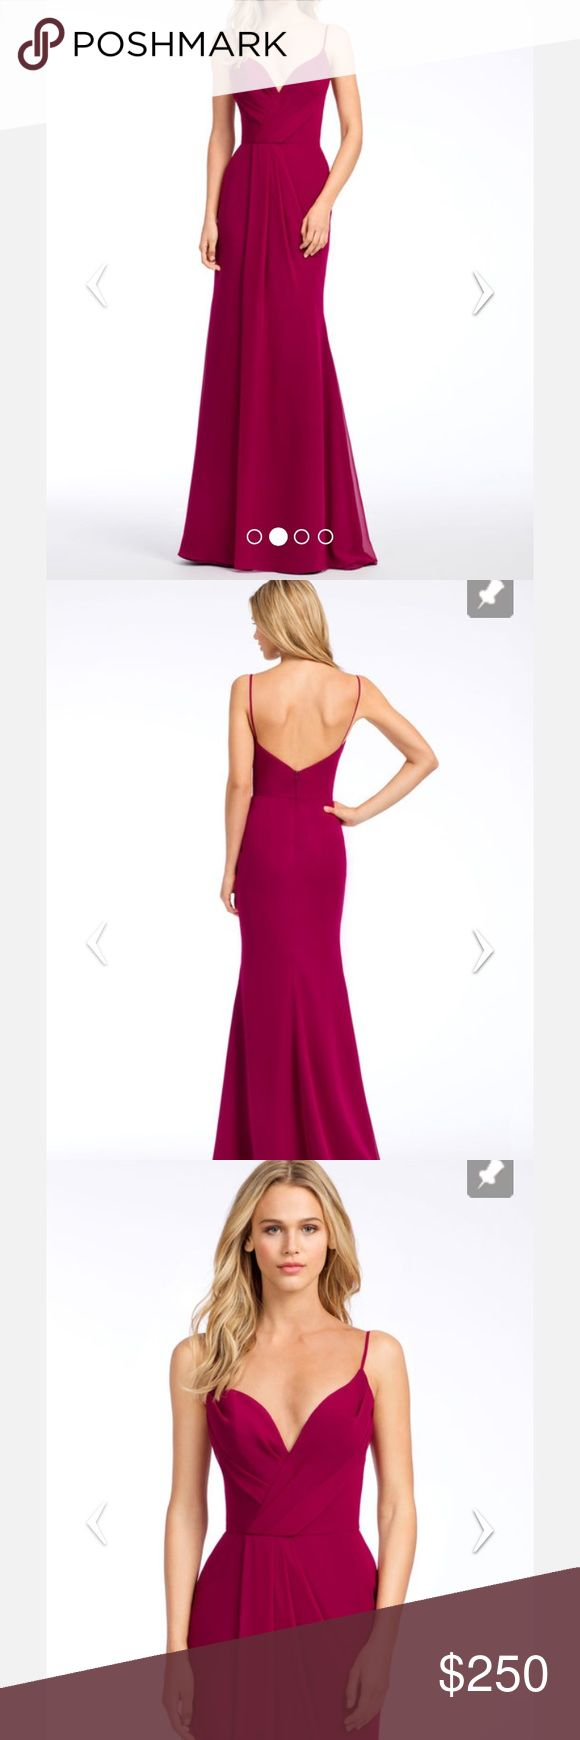 HAYLEY PAIGE OCCASIONS BRIDESMAIDS DRESS Azalea chiffon A-line bridesmaid gown, curved V-neckline, natural waist with side drape on skirt. Color is burgundy. This was originally purchased as a bridesmaids dress but the wedding ended up getting cancelled. hailey paige Dresses Wedding